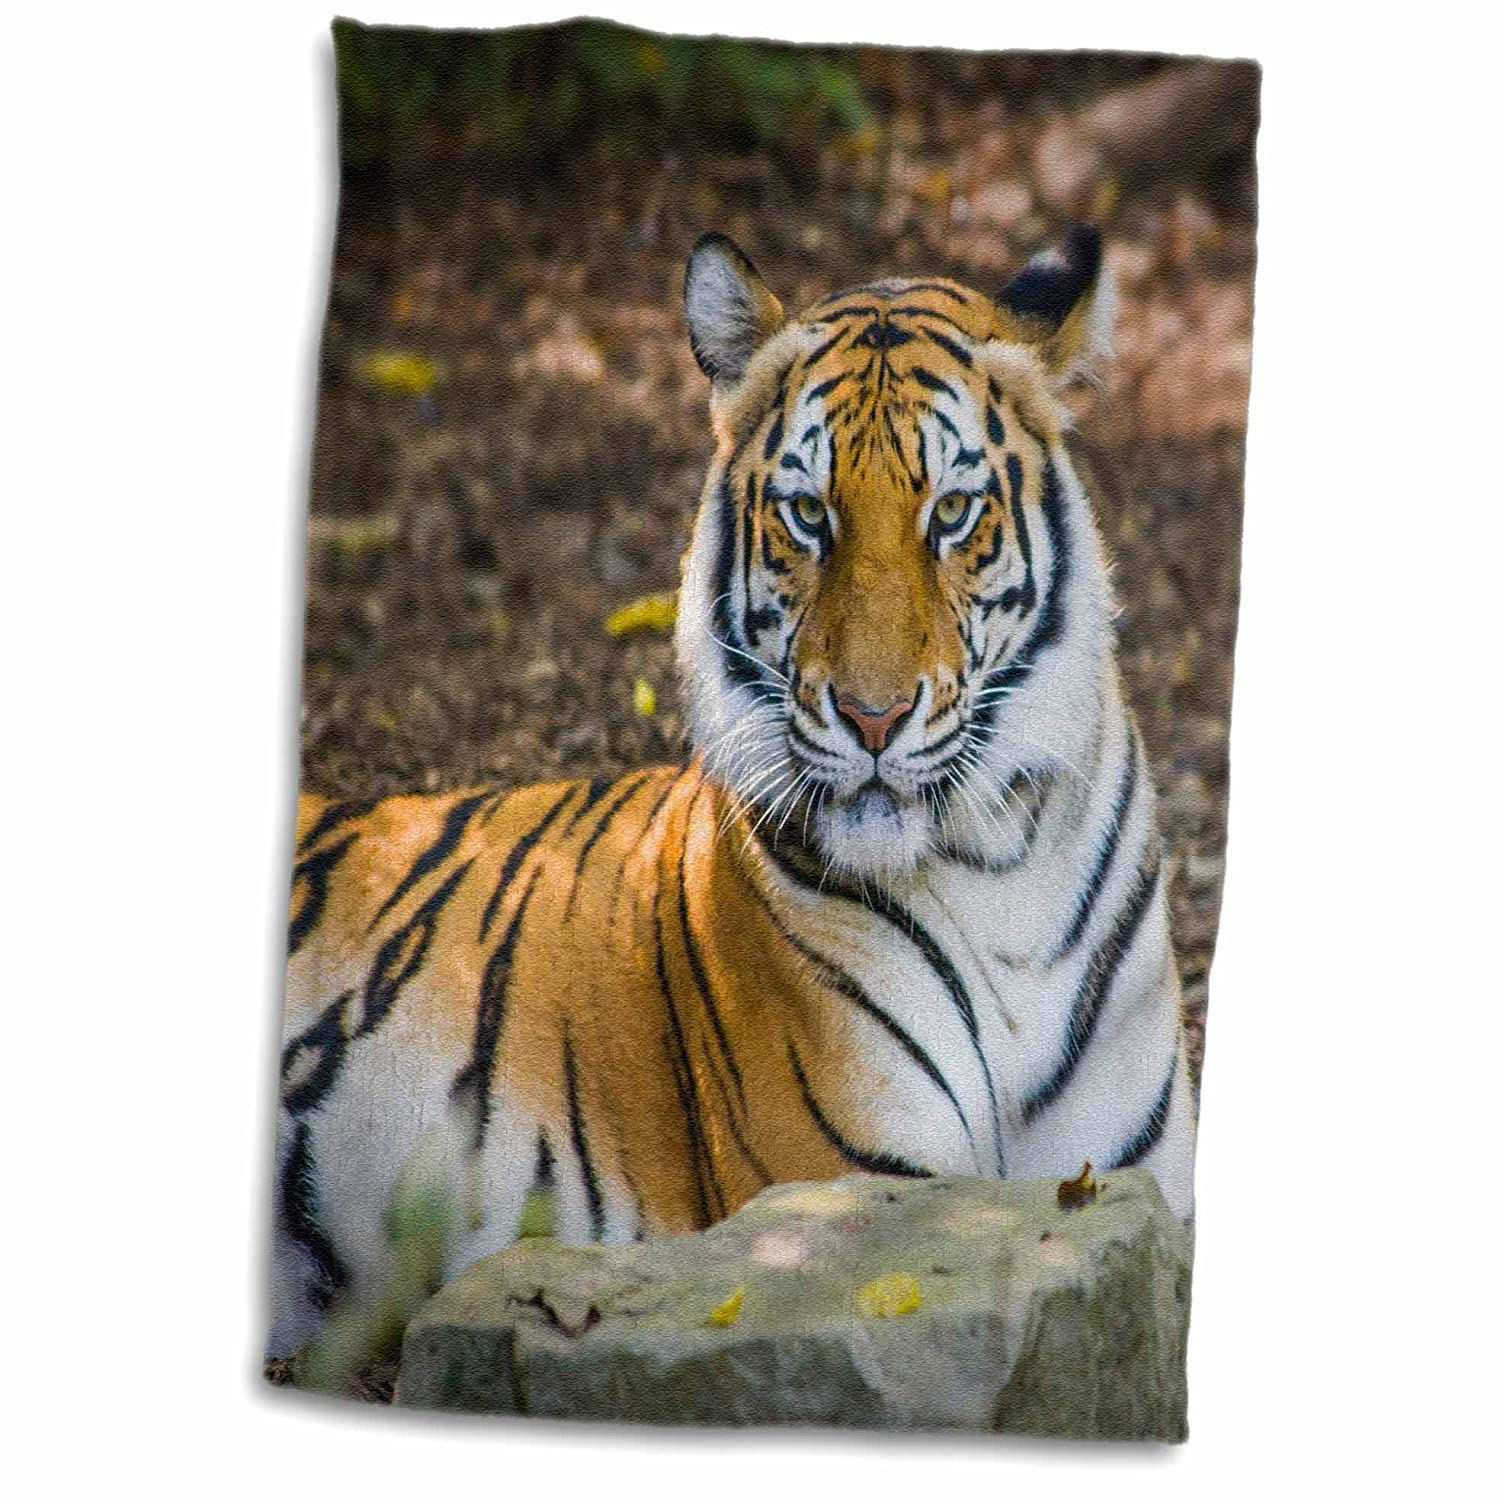 3dRose Bengal Tiger Zoo, Nashville, Tennessee, USA Towel, White, 15 x 22 Pulgadas: Amazon.es: Hogar